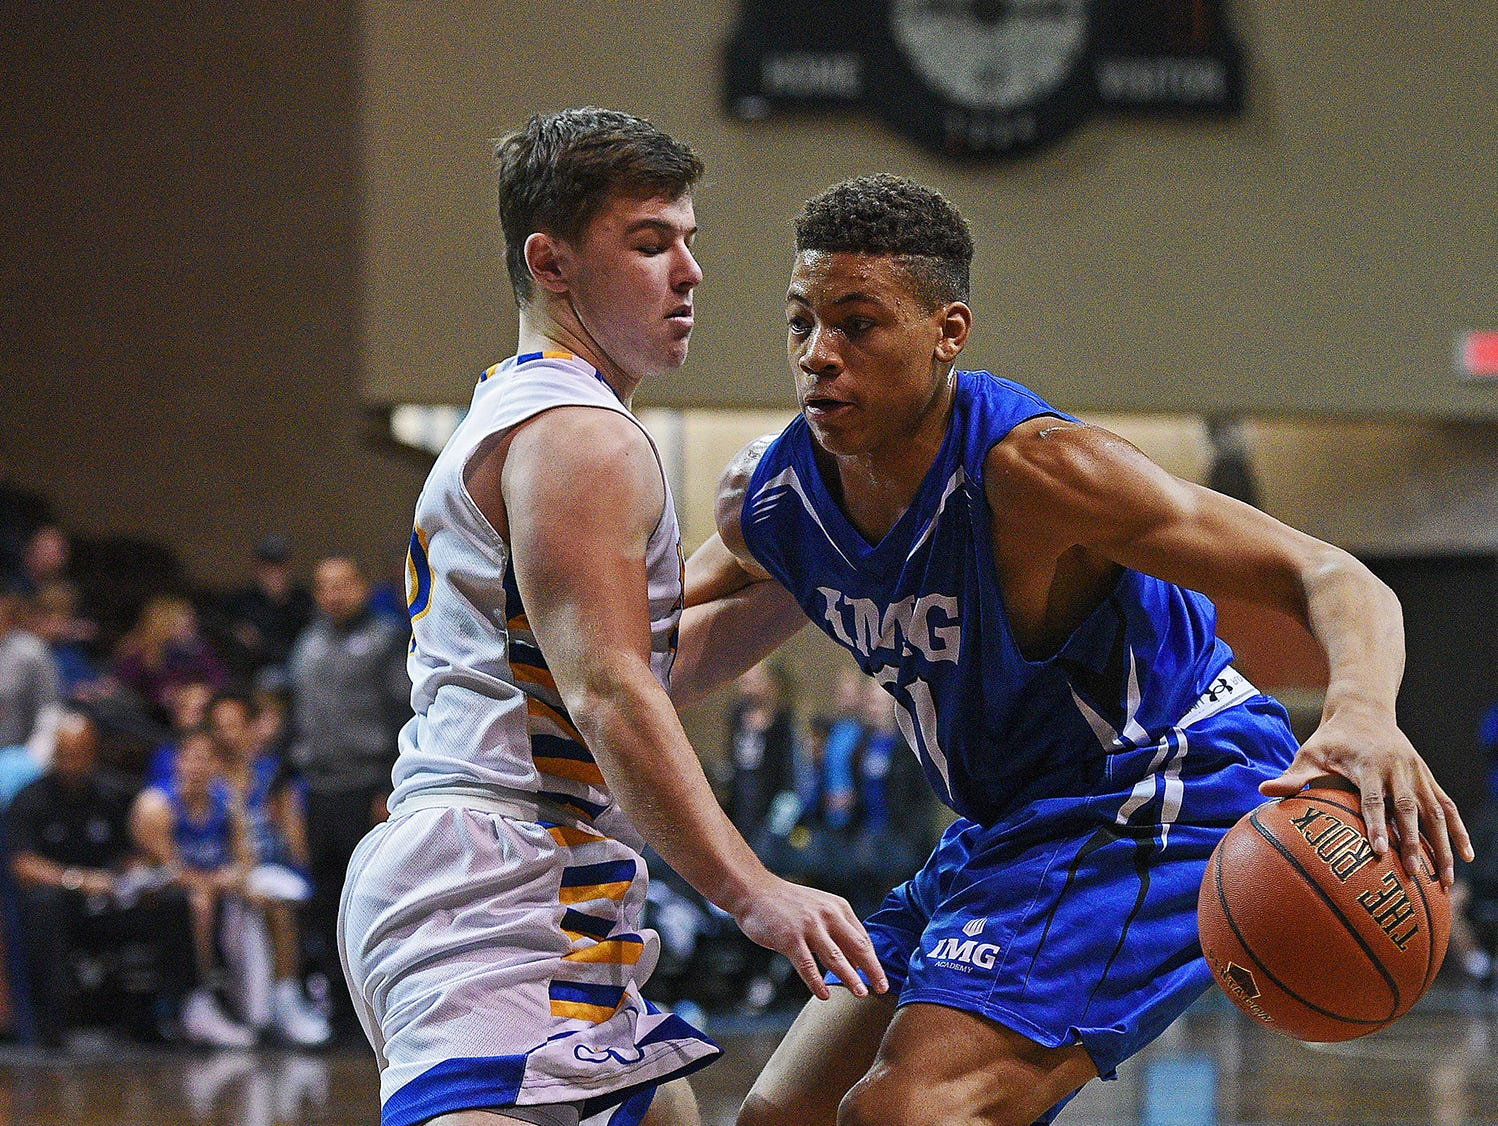 IMG Academy's Keyontae Johnson (11) tries to get past O'Gorman's Riley Katen (10) during the Gary Munsen Tournament Championship game Friday, Dec. 30, 2016, at the Sanford Pentagon in Sioux Falls.